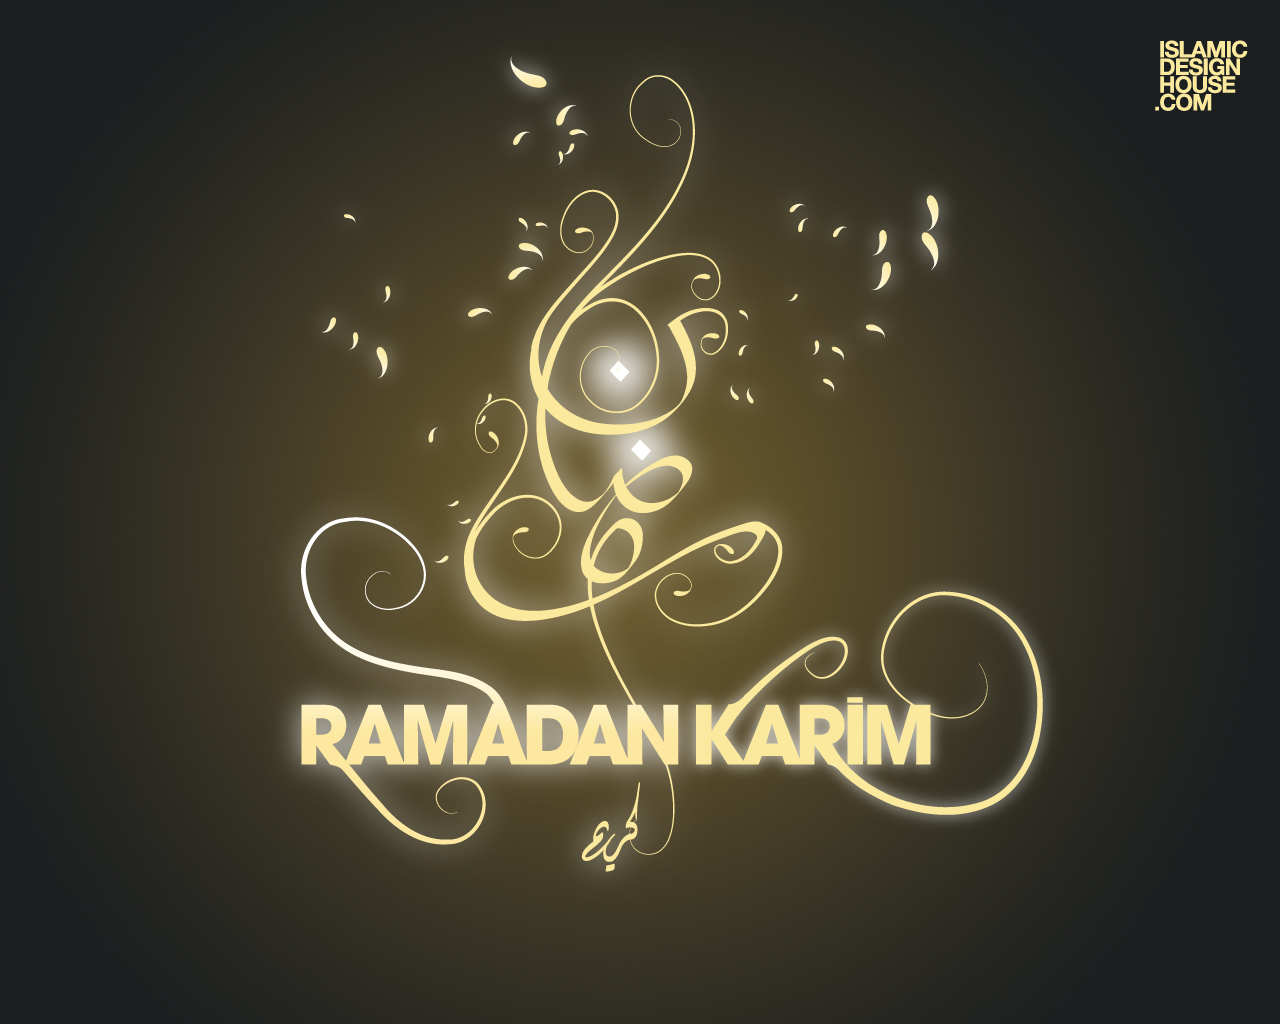 ramadan 10 city mature women dating site Ramadan 10 city's best free dating site 100% free online dating for ramadan 10 city singles at mingle2com our free personal ads are full of single women and men in ramadan 10 city looking for serious relationships, a little.